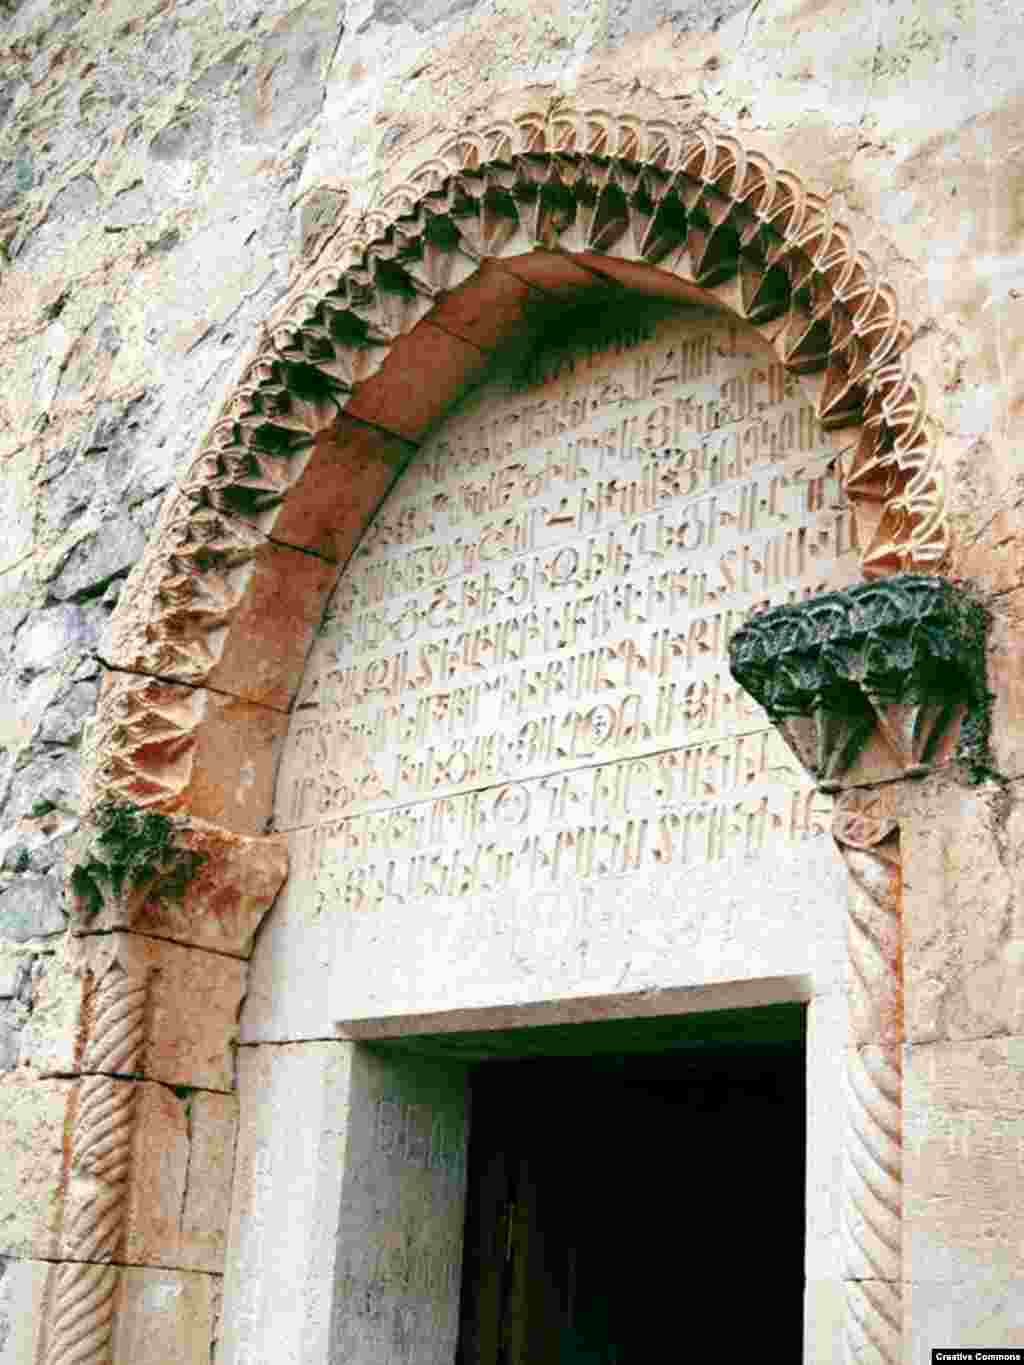 Armenian script towers over the door at an entrance to the Yeritsmankants monastery. The partially ruined monastery was built in 1691.